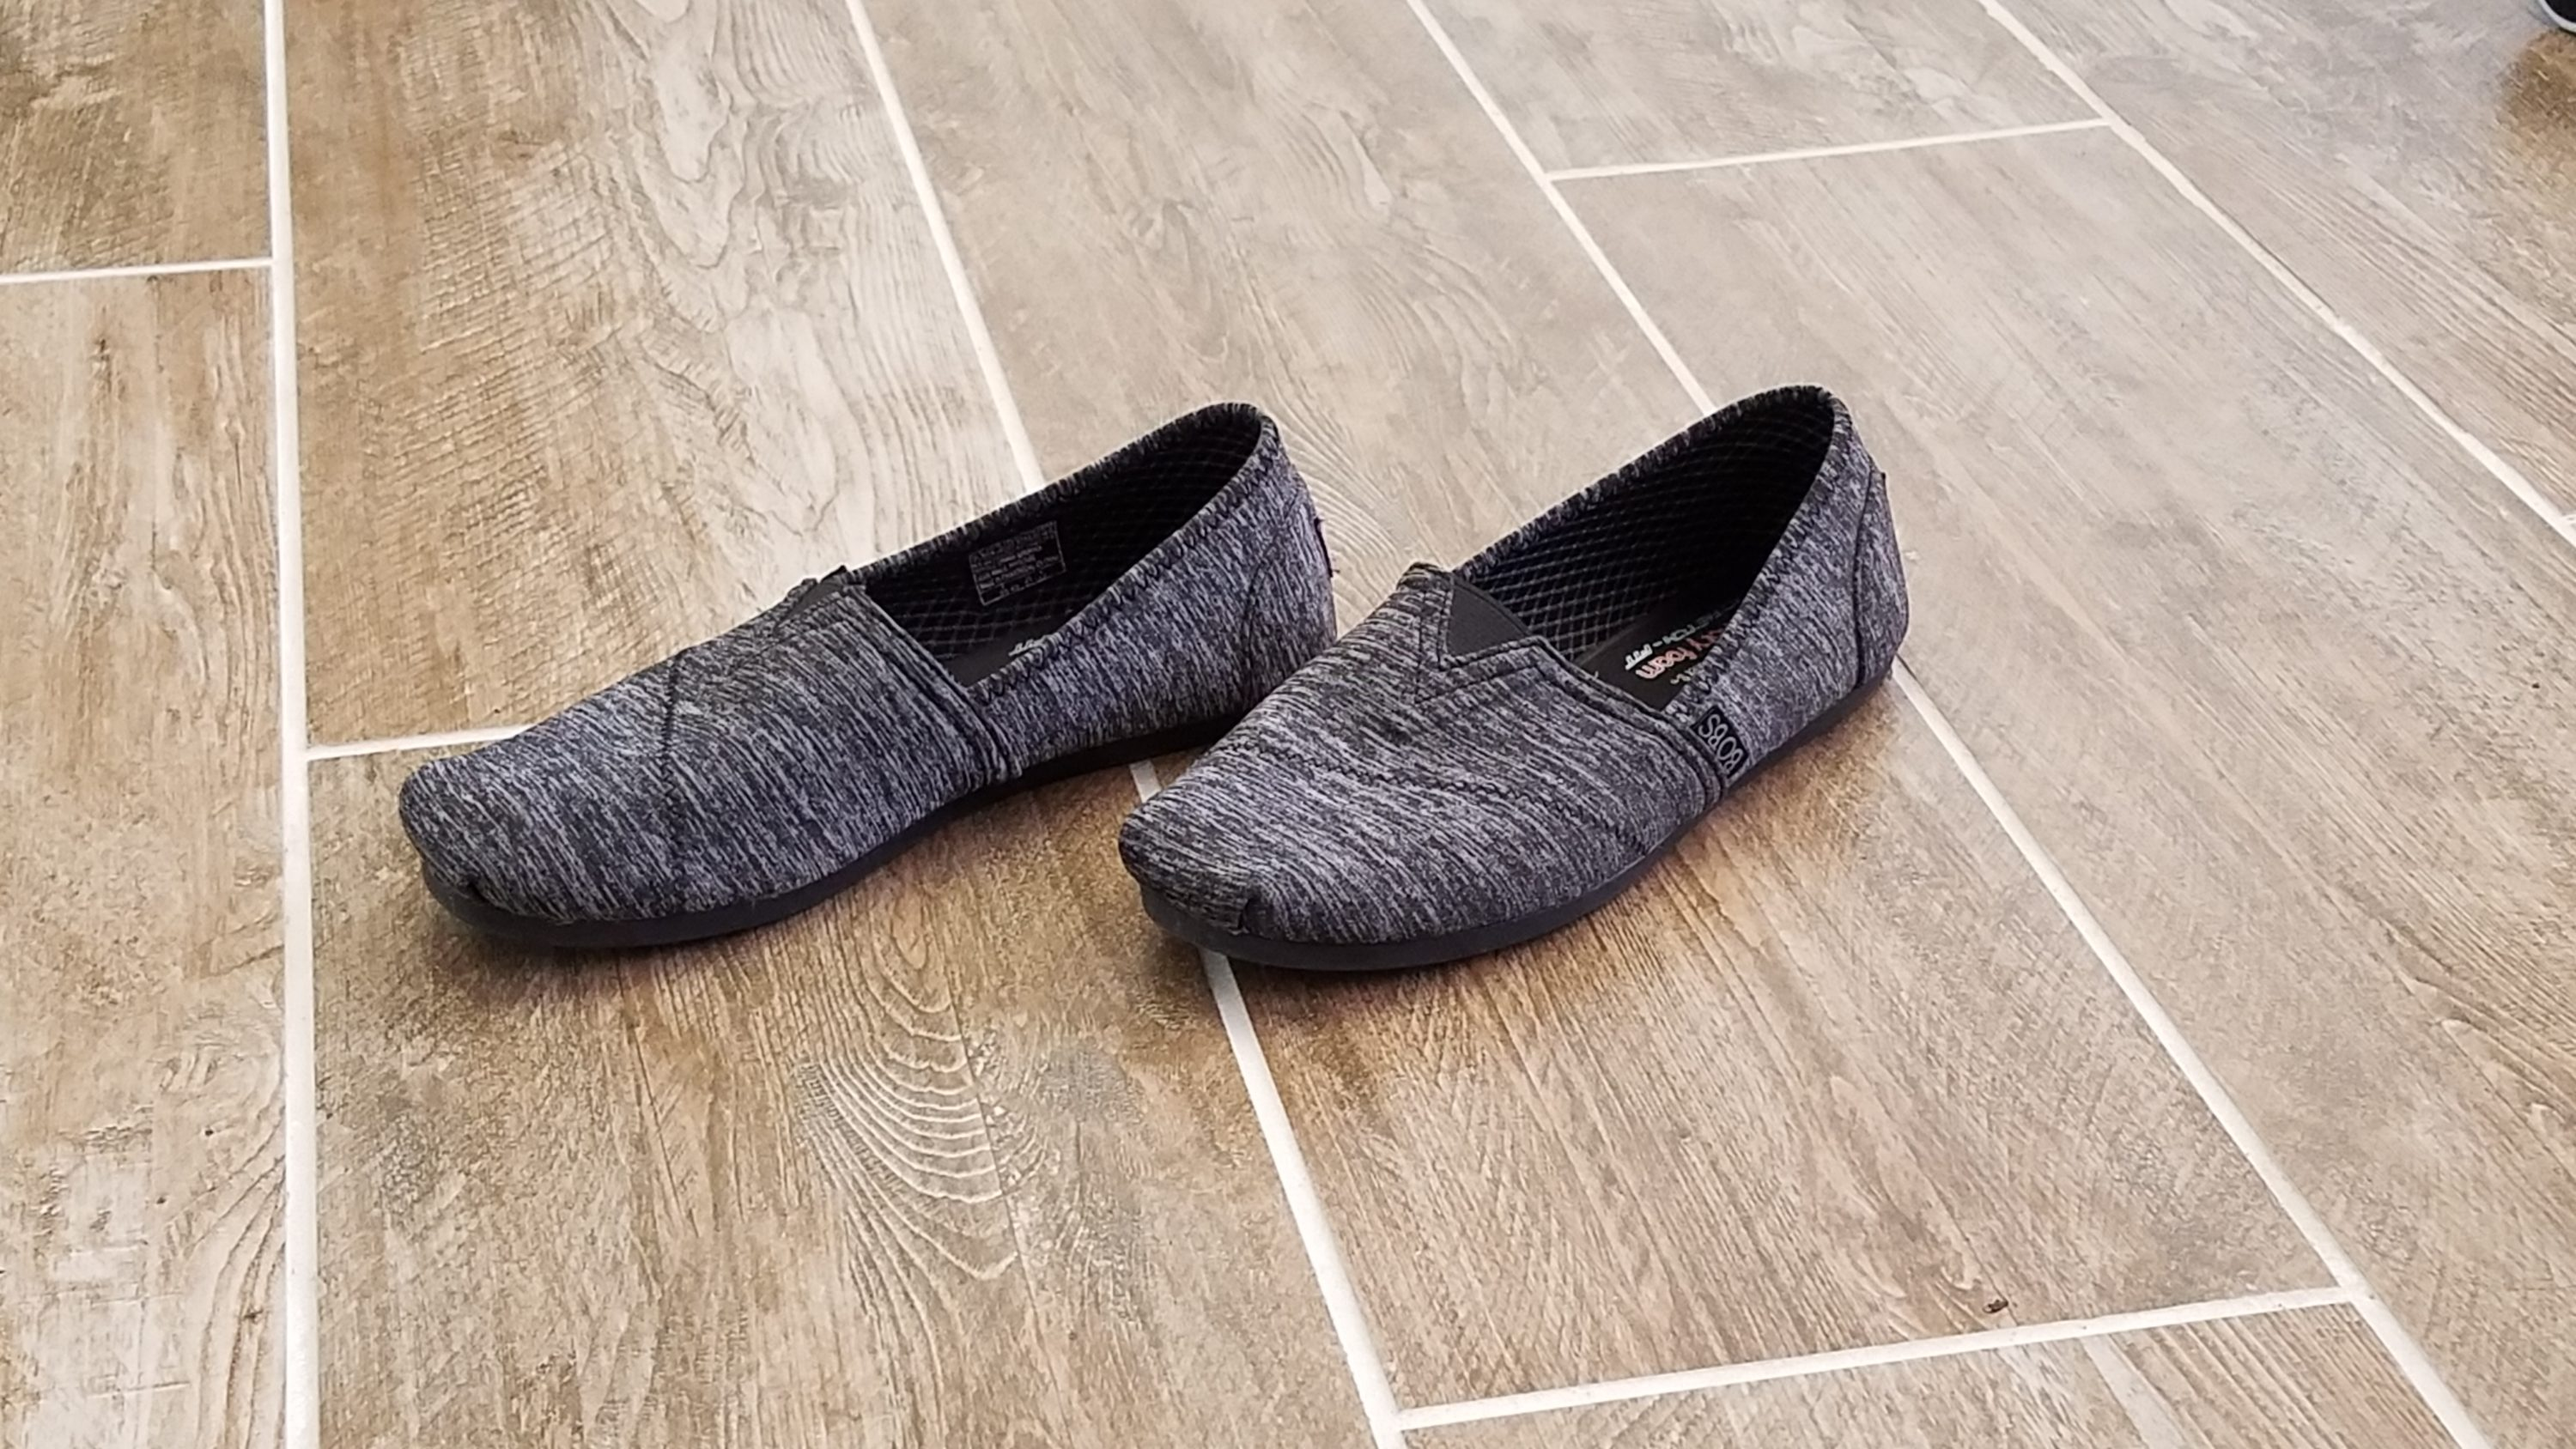 Barefoot Minimalist Shoes • Get Your Fix Physical Therapy a802a57e5